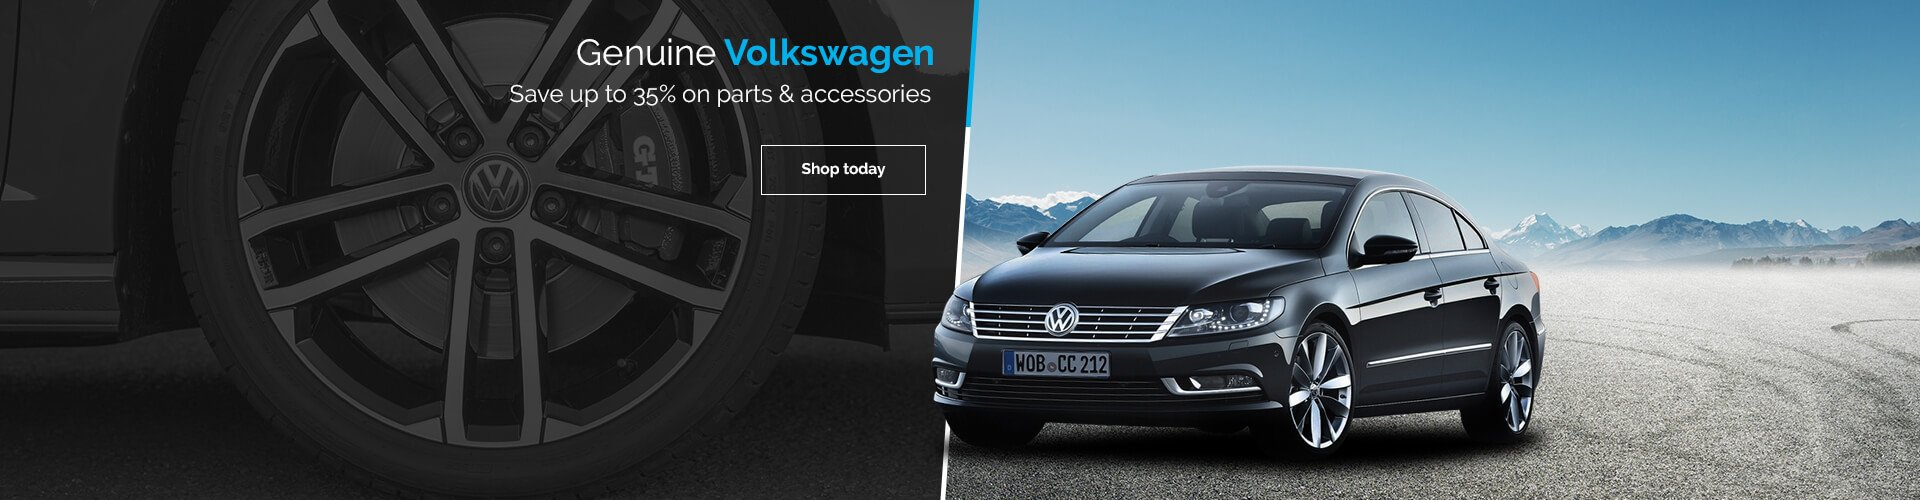 Genuine VW parts & accessories